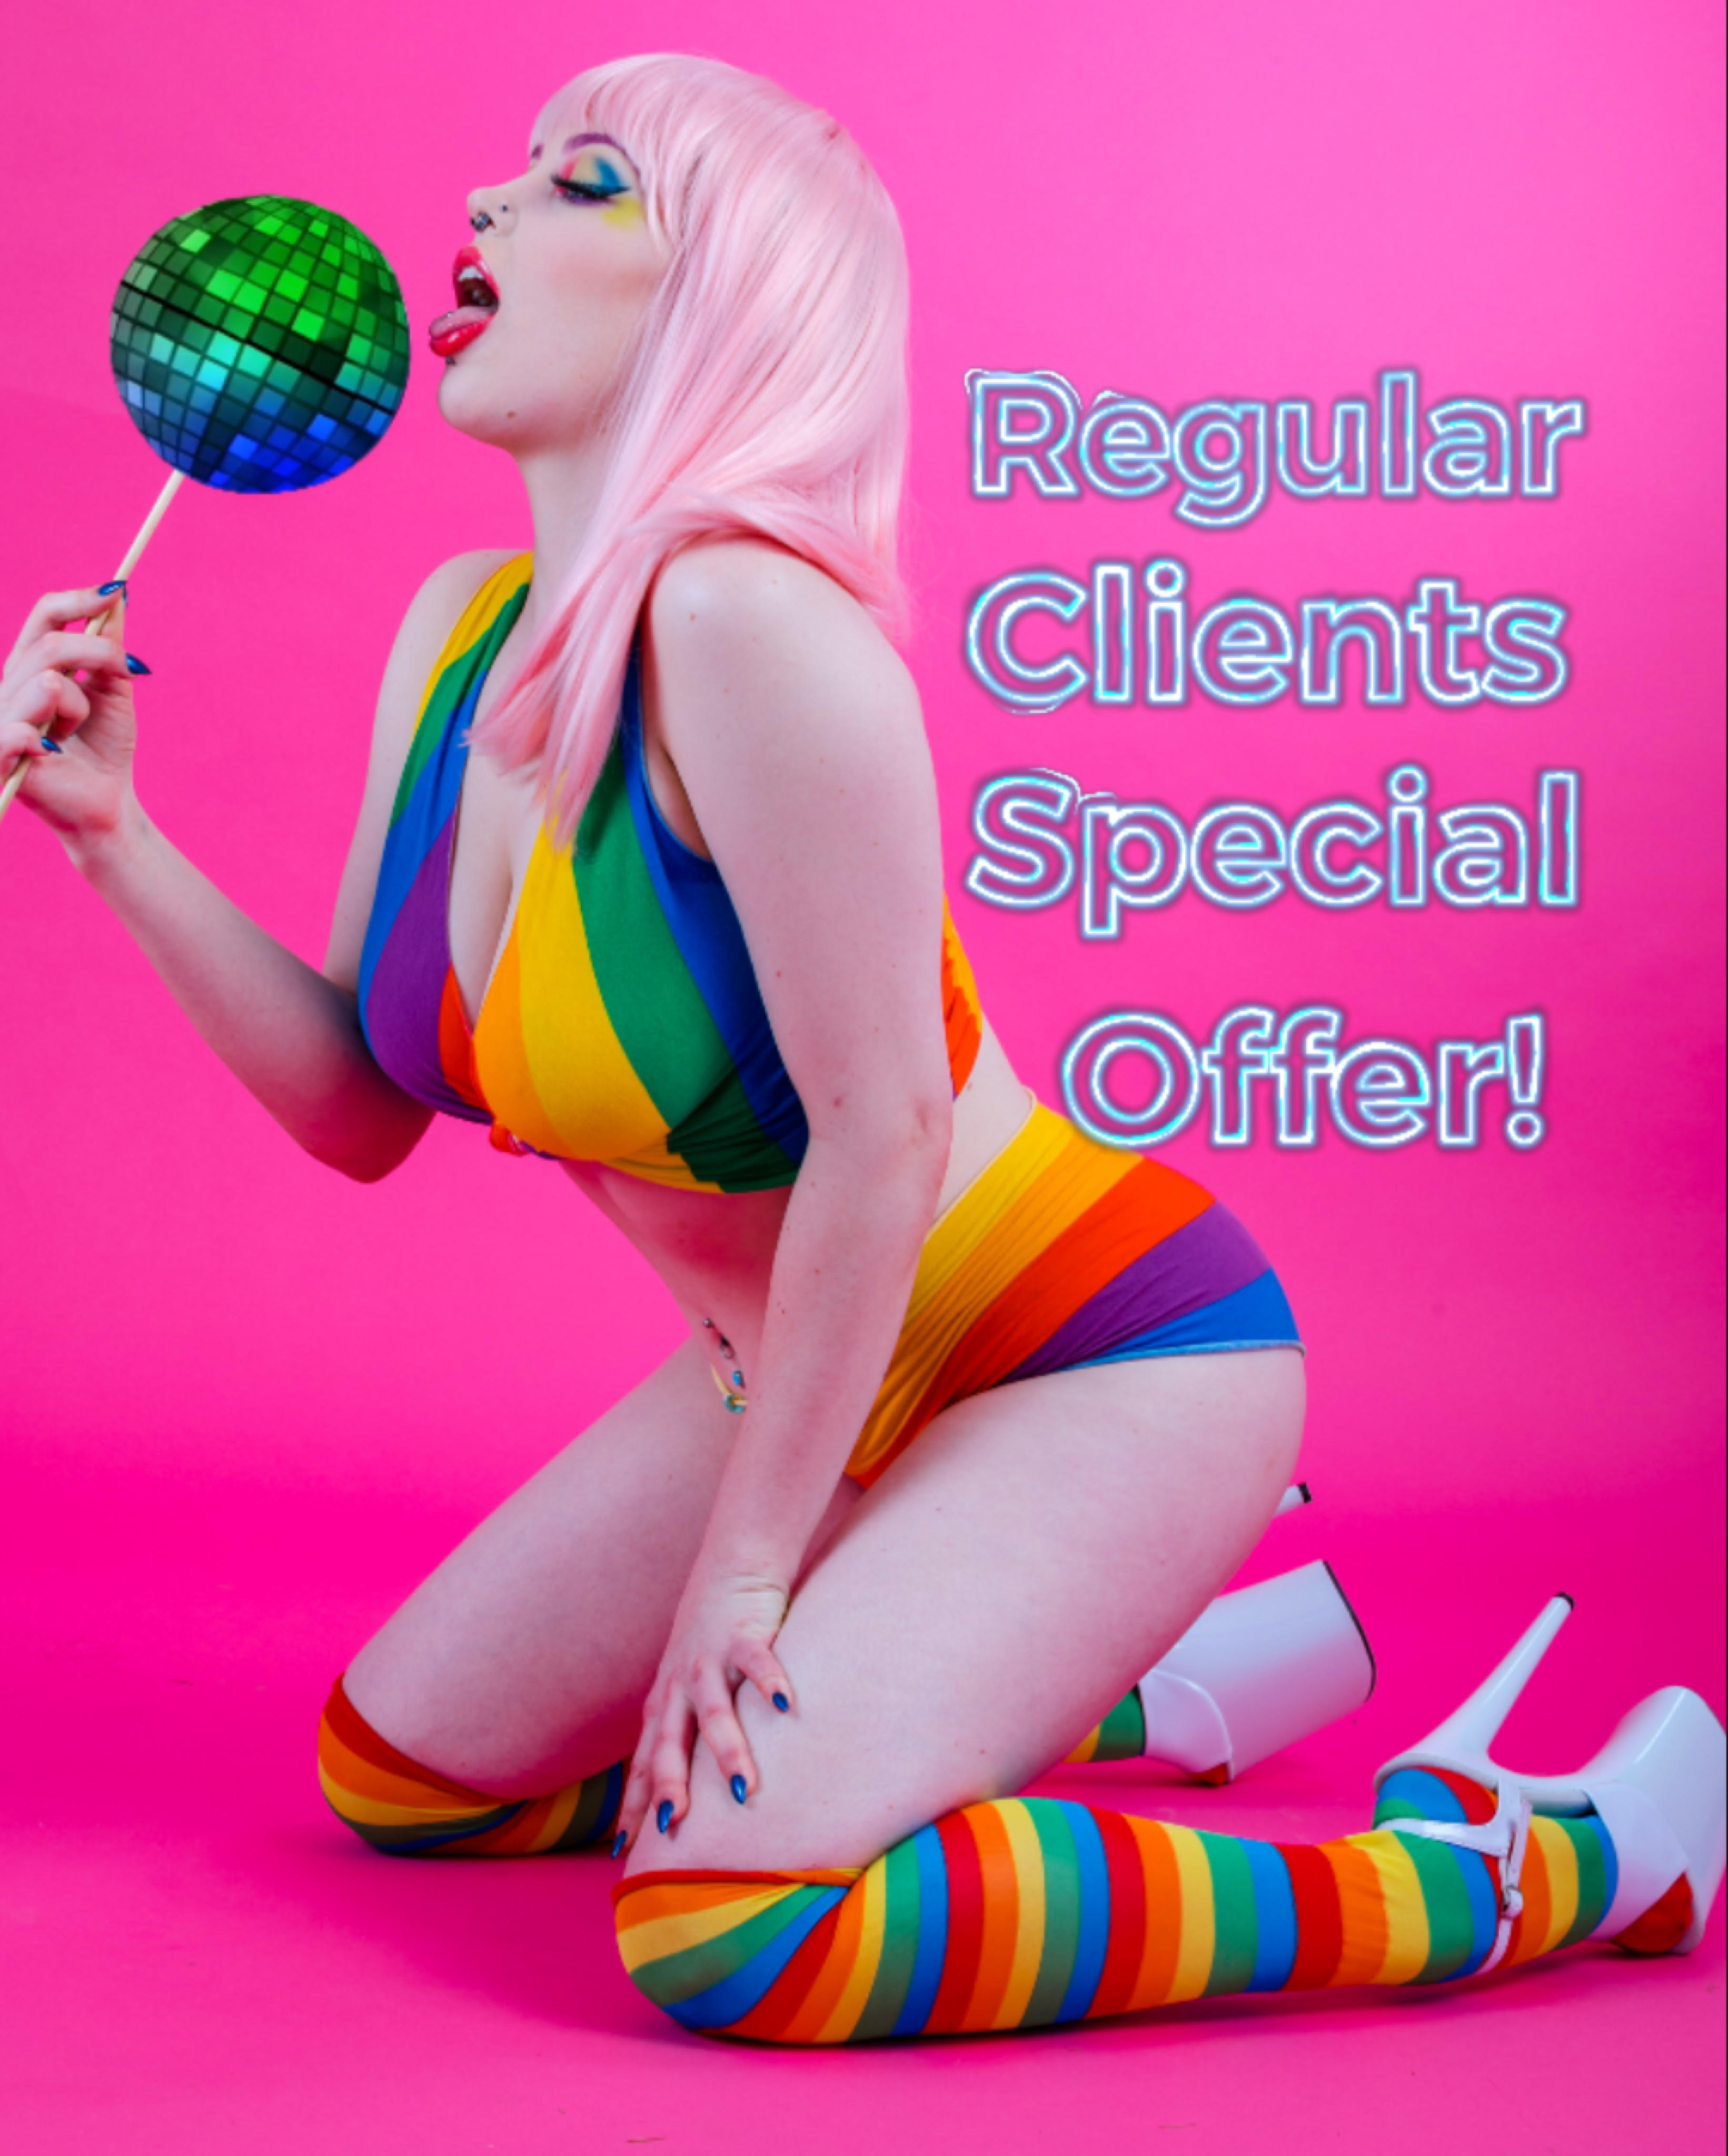 To sweeten the deal for return clientele